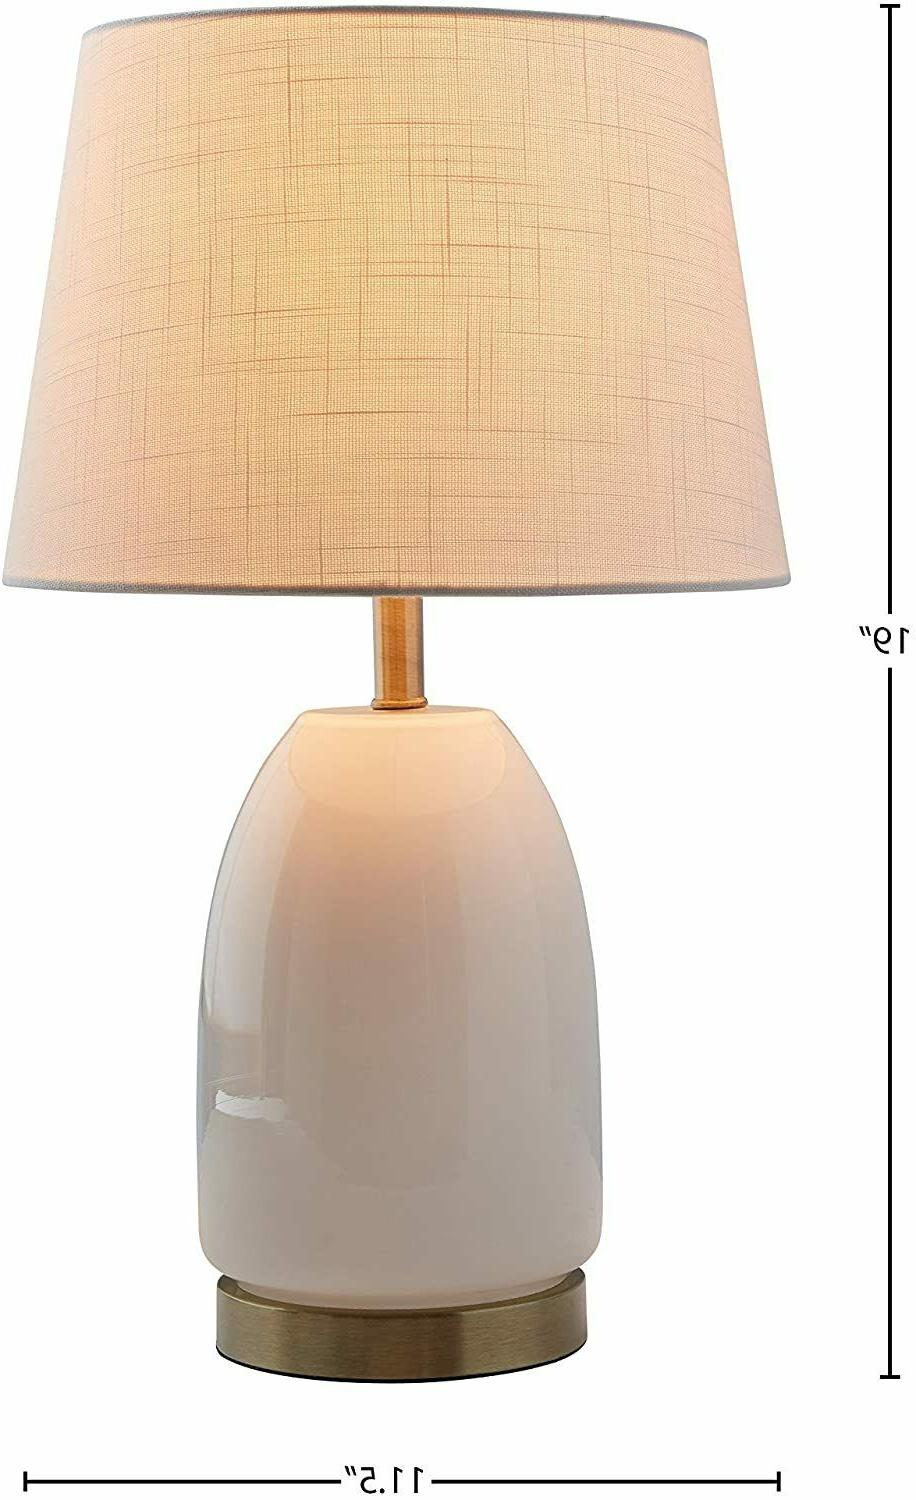 white glass w brass trim table lamp